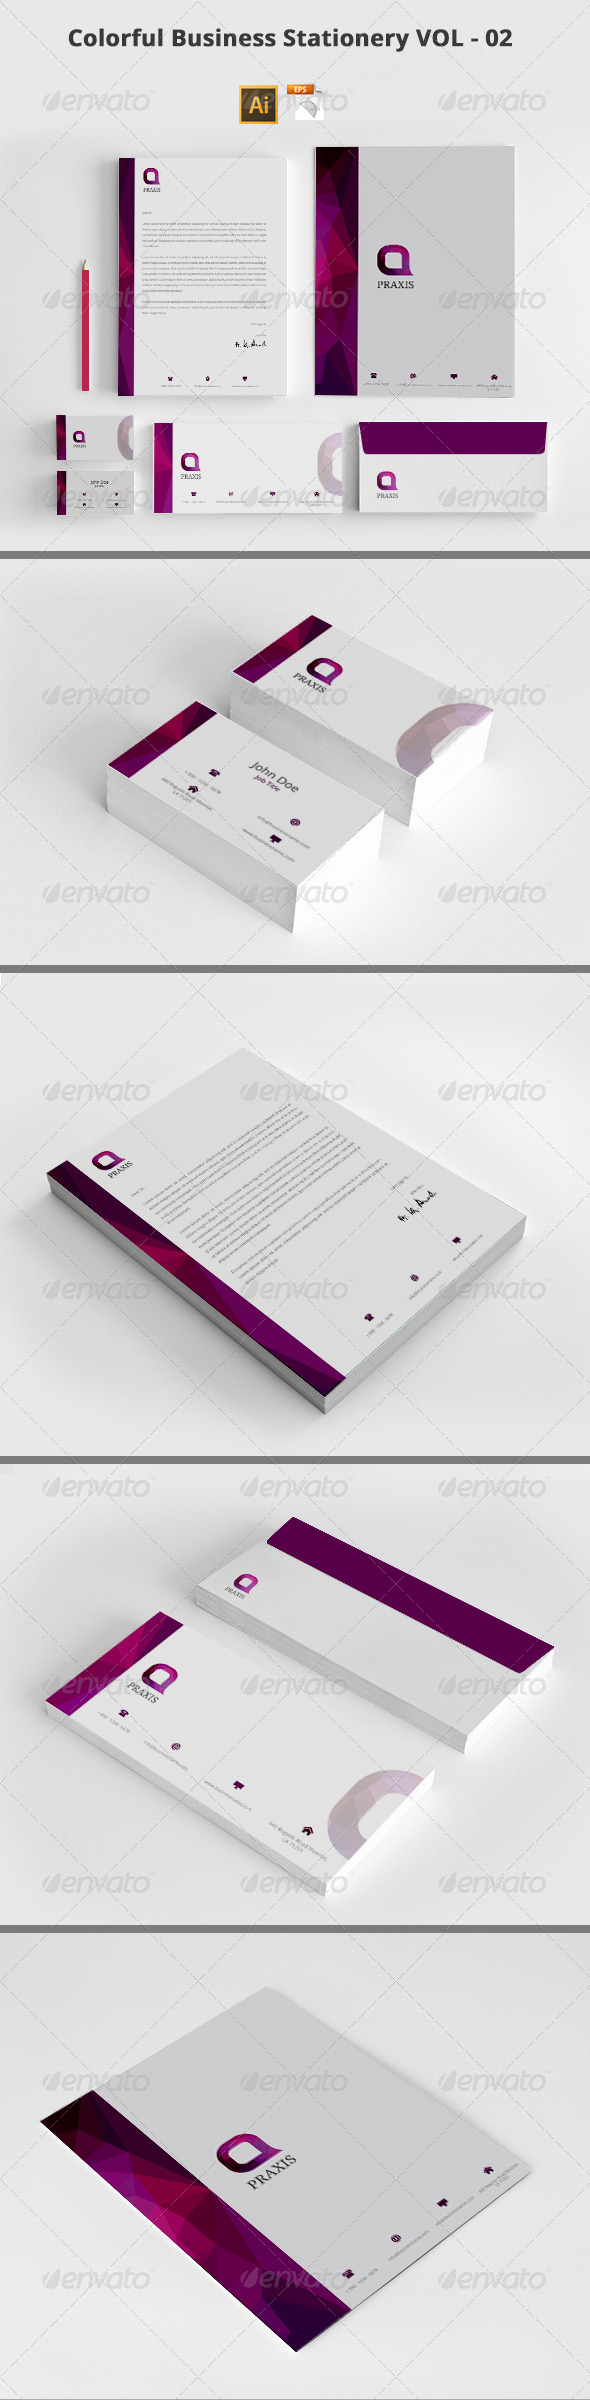 GraphicRiver Colorful Business Stationery VOL 02 8535117